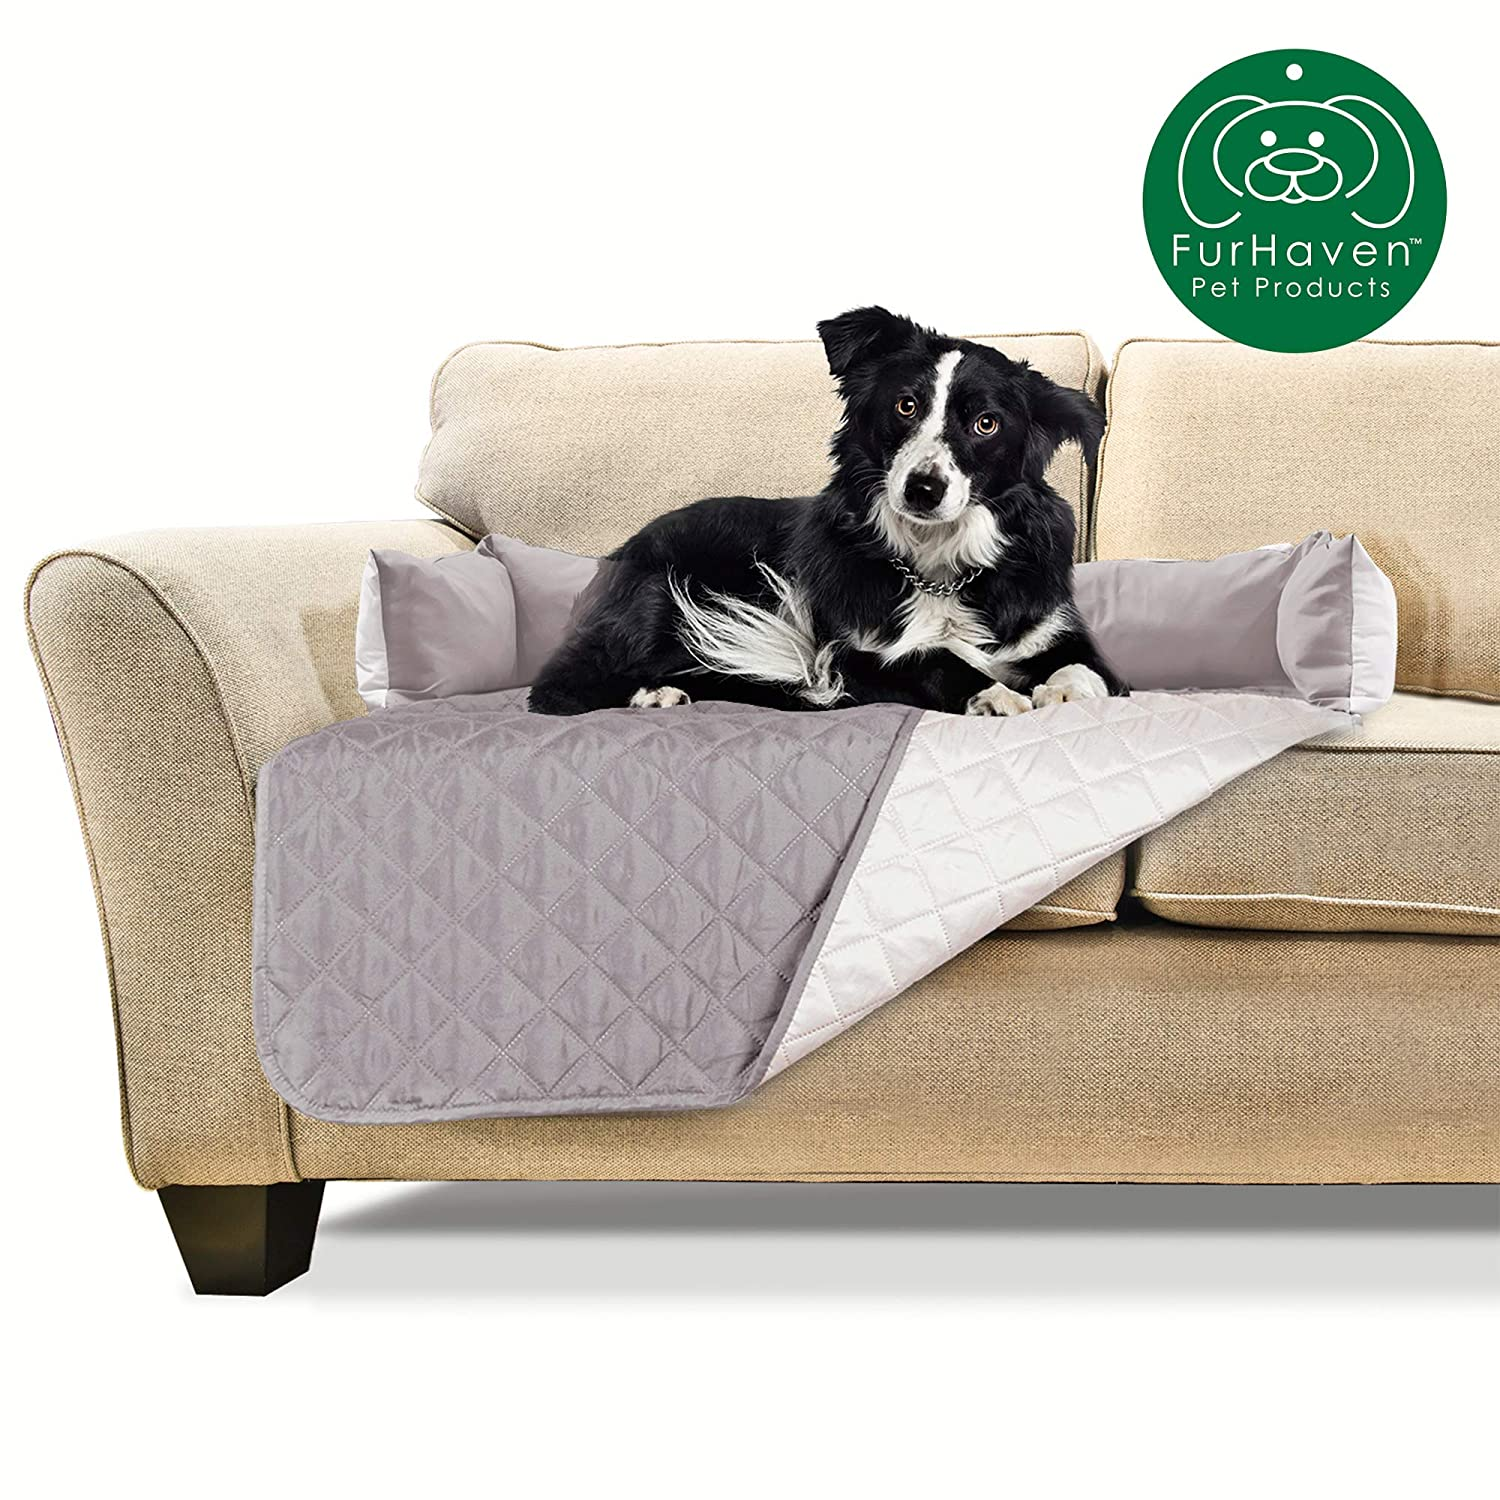 Peachy Furhaven Pet Furniture Cover Two Tone Reversible Water Resistant Quilted Living Room Furniture Cover Protector Pet Bed For Dogs Cats Available Creativecarmelina Interior Chair Design Creativecarmelinacom